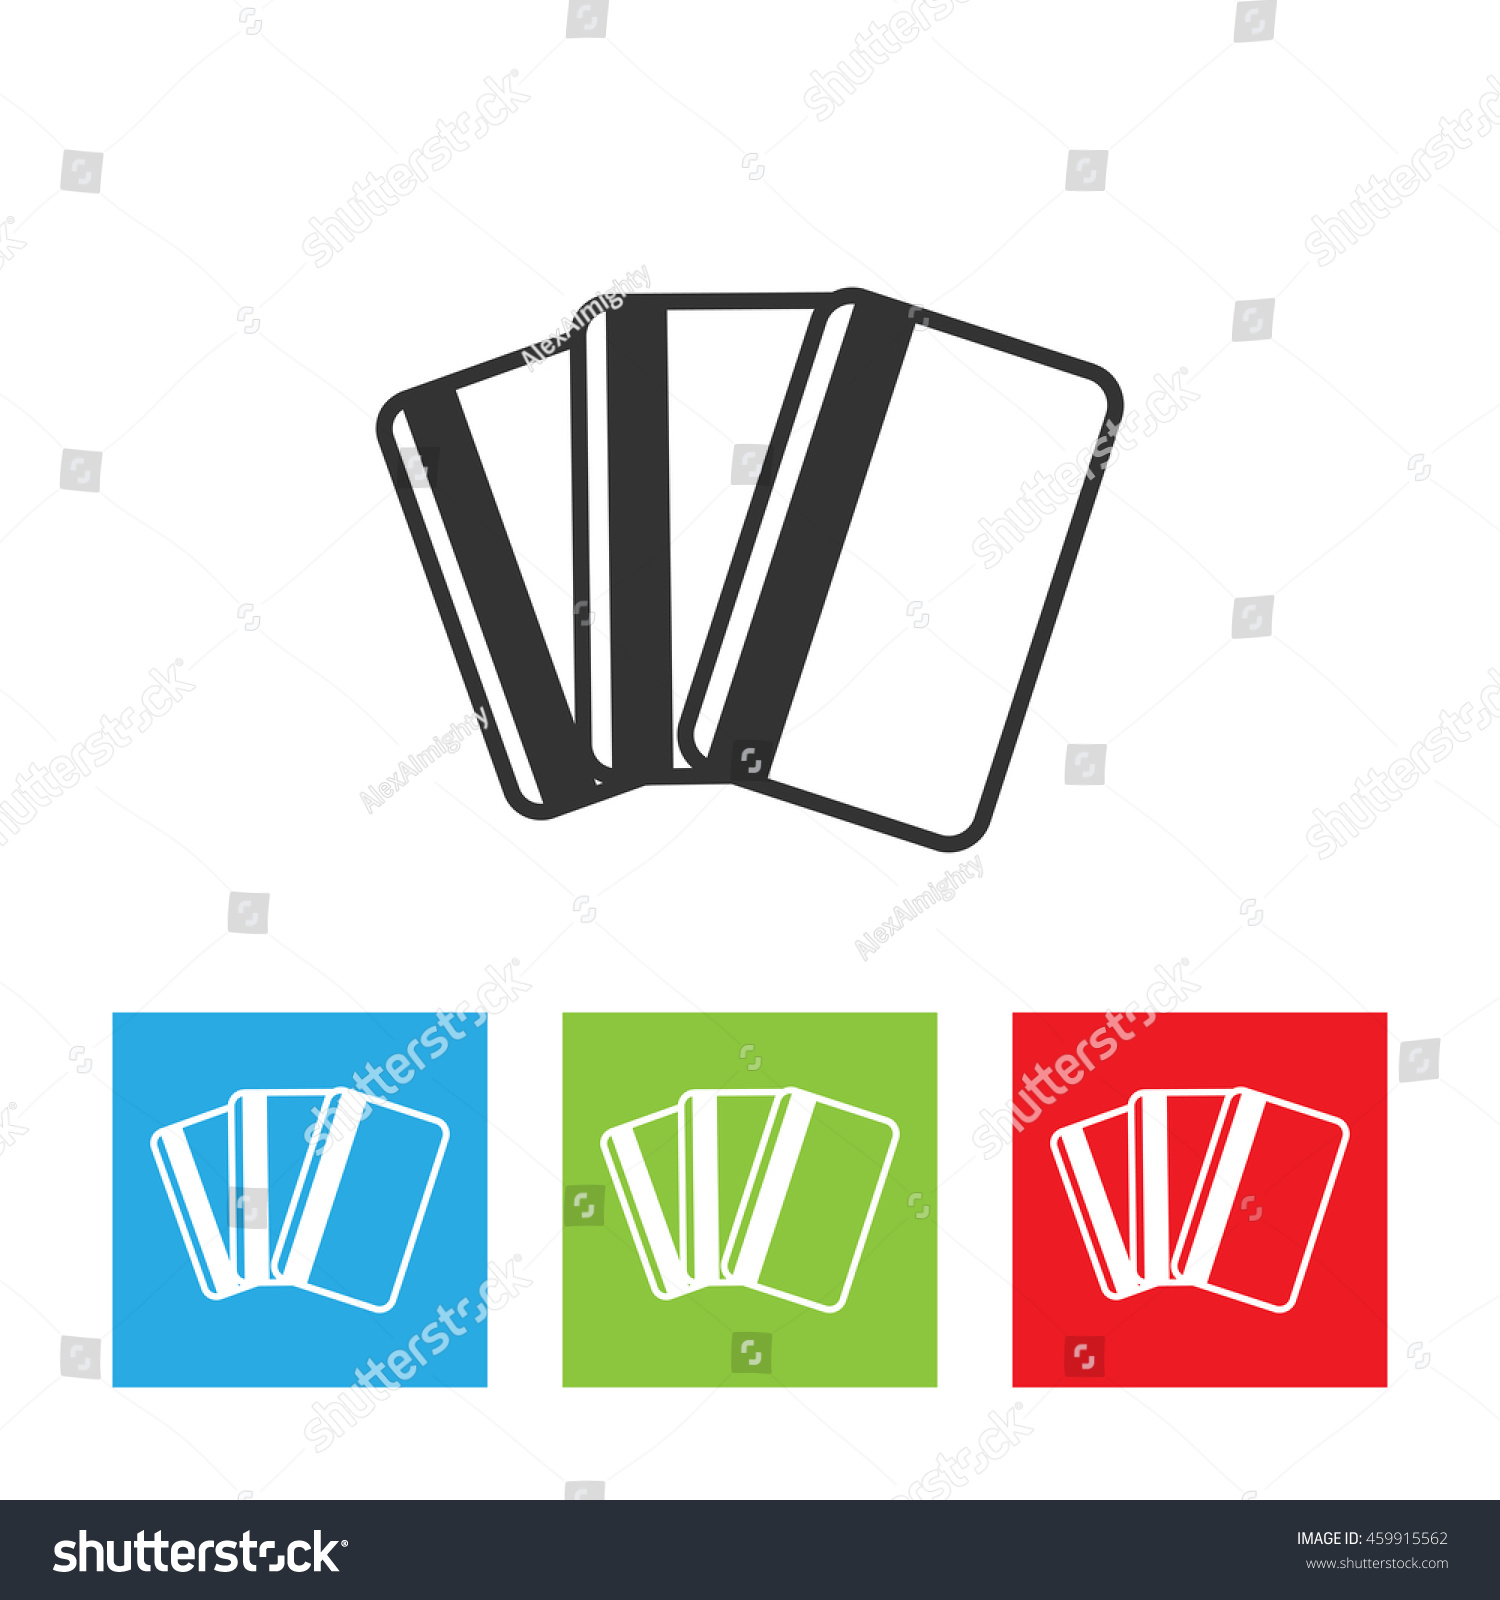 credit card icon credit card logo stock vector 459915562 rh shutterstock com black and white credit card logos vector black and white credit card logos vector